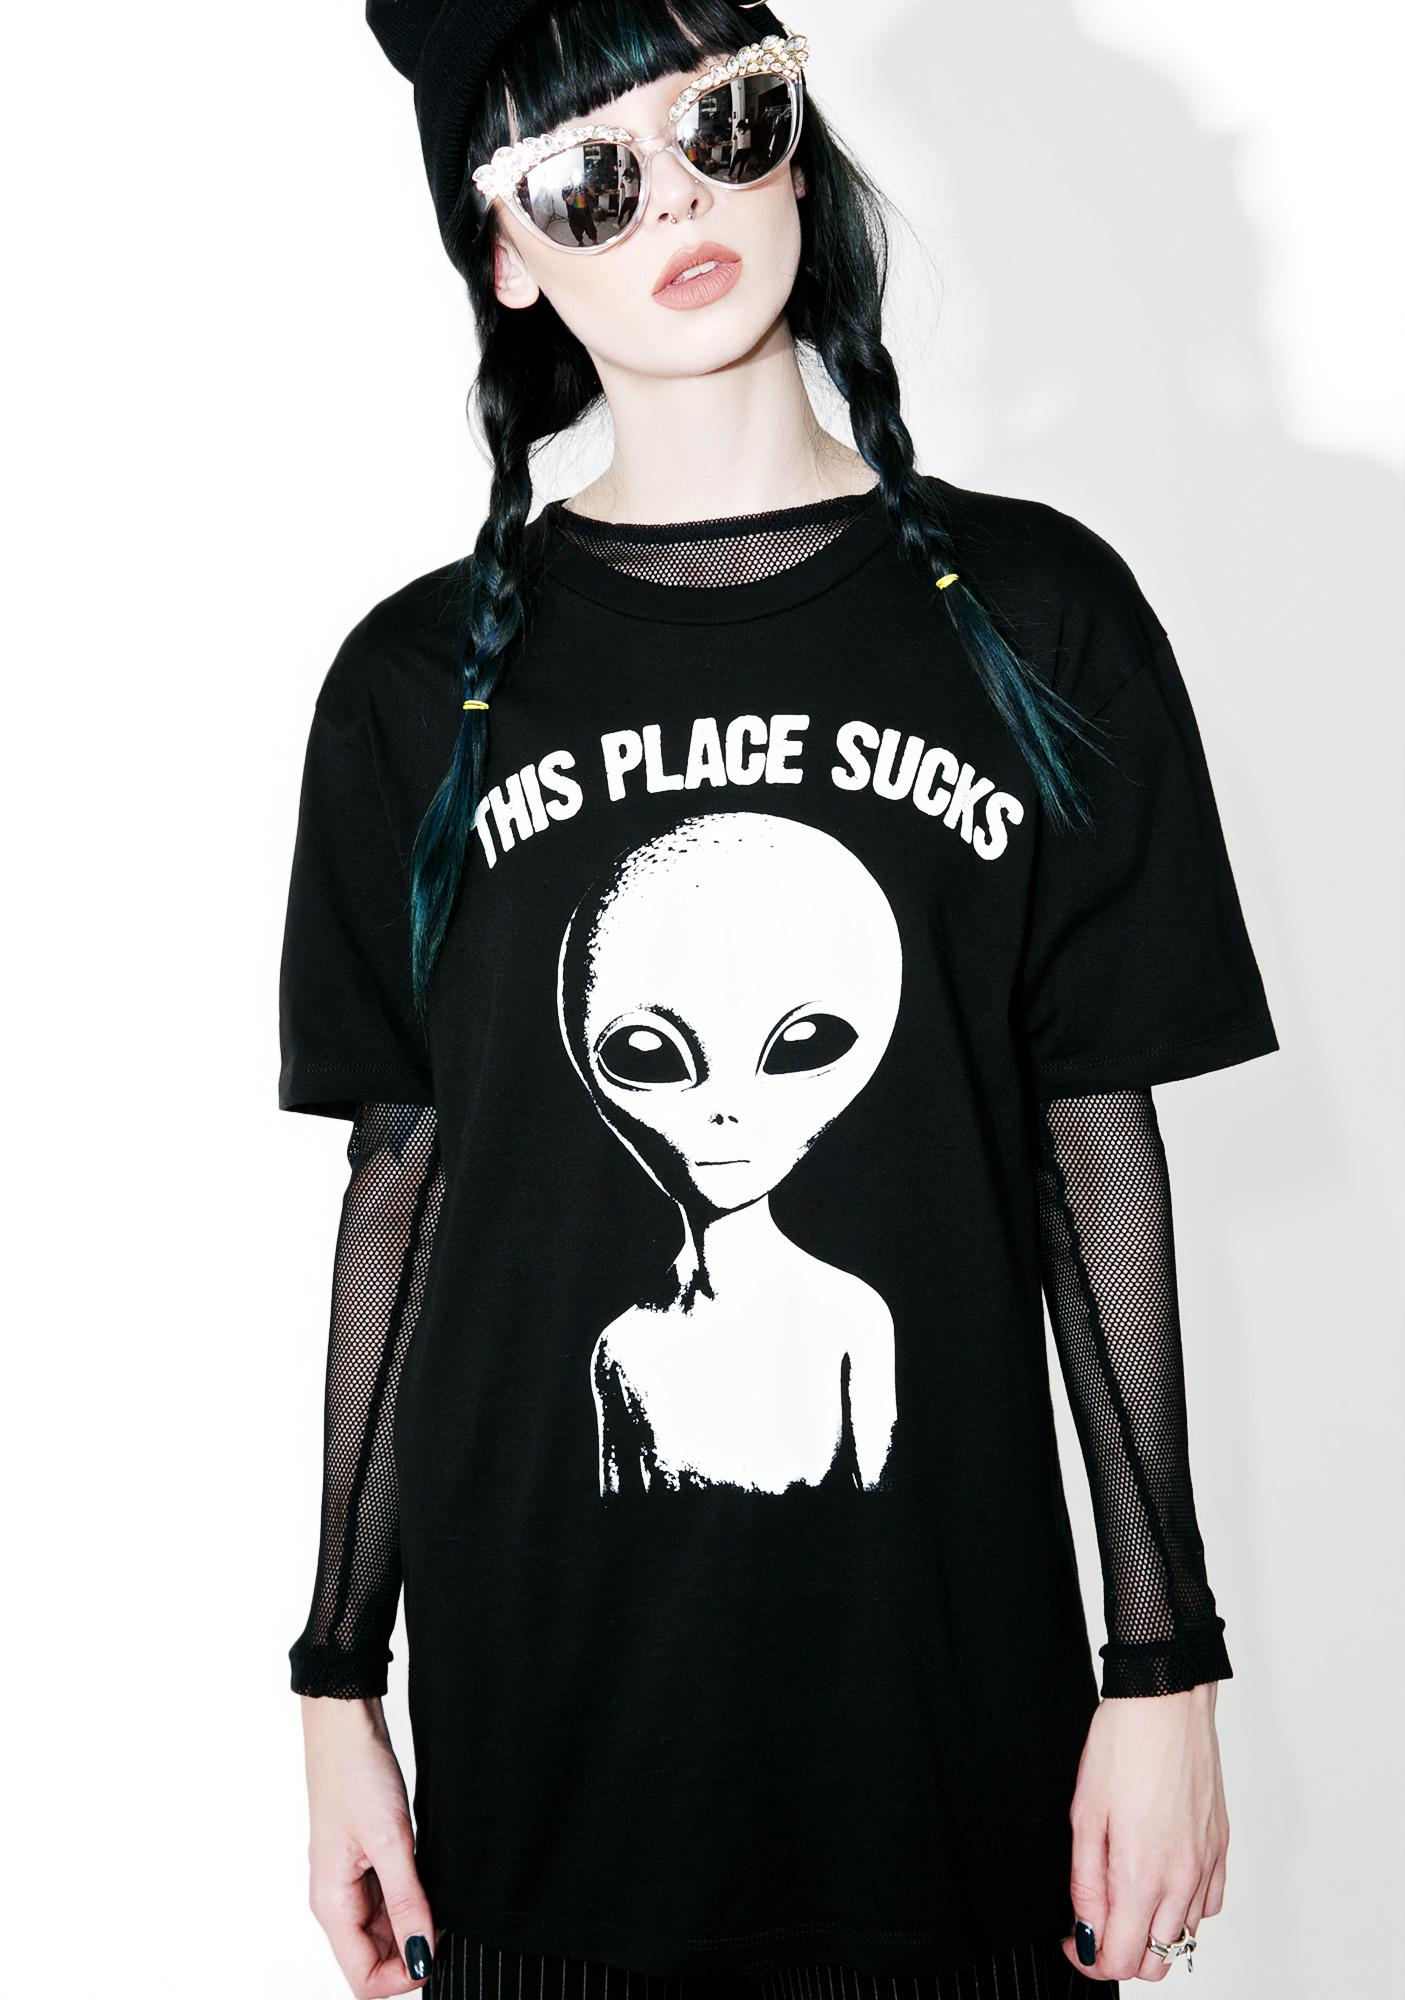 This Place Sucks Tee